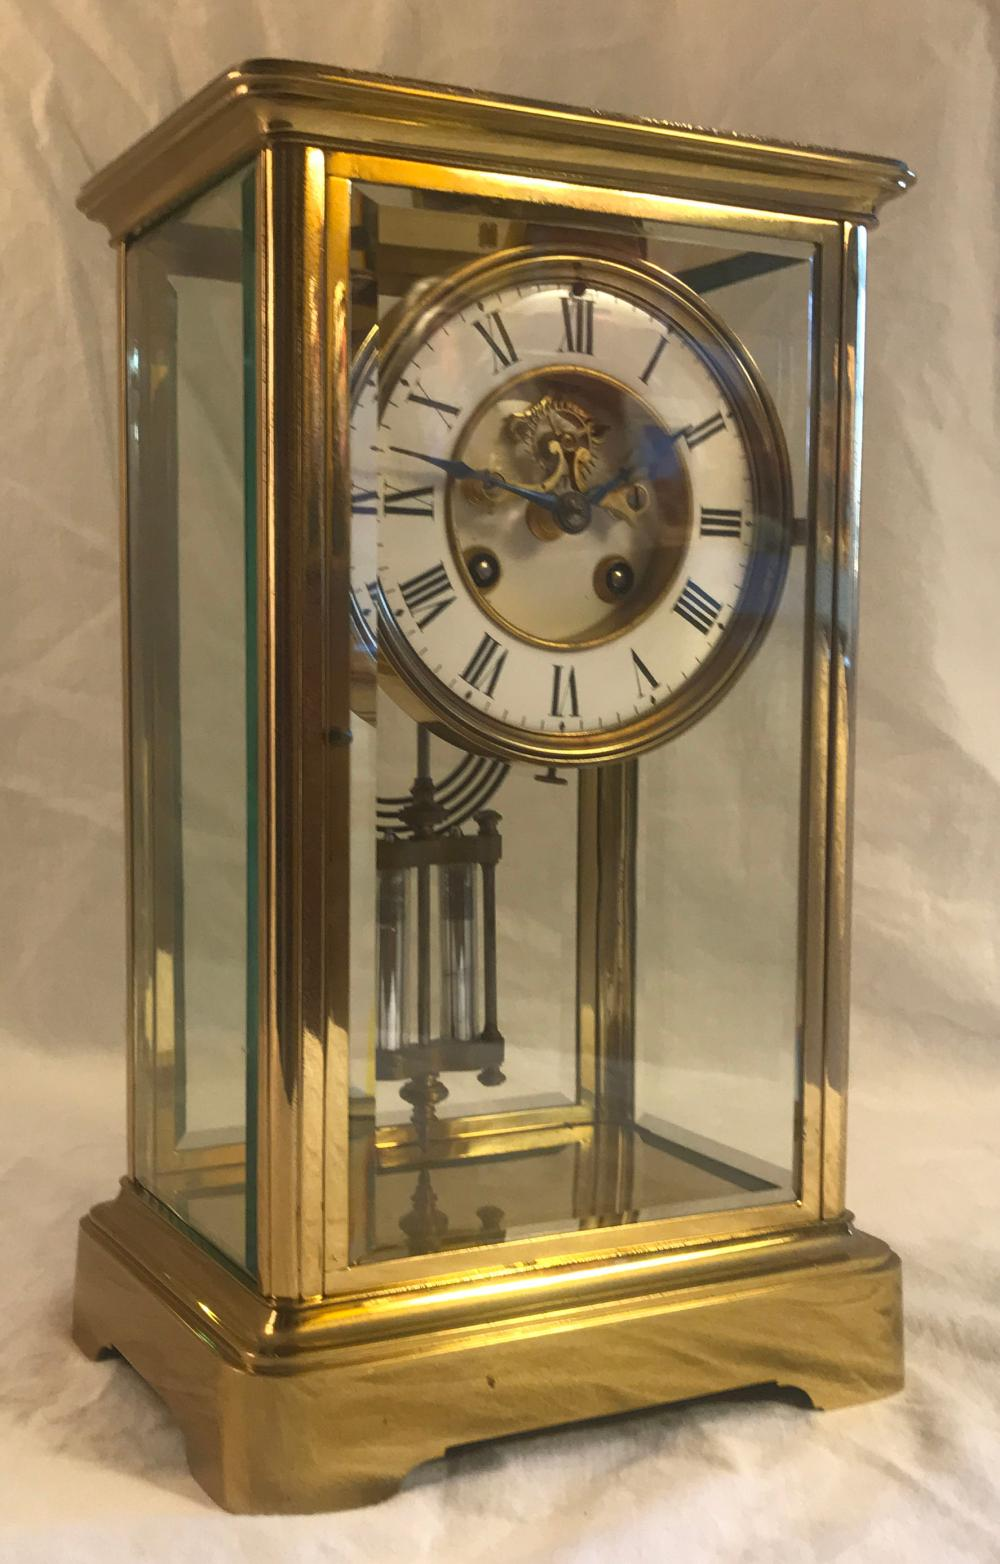 Crystal Regulator Clock French Movement Marked Le Marte, Me Dialle De Bronze